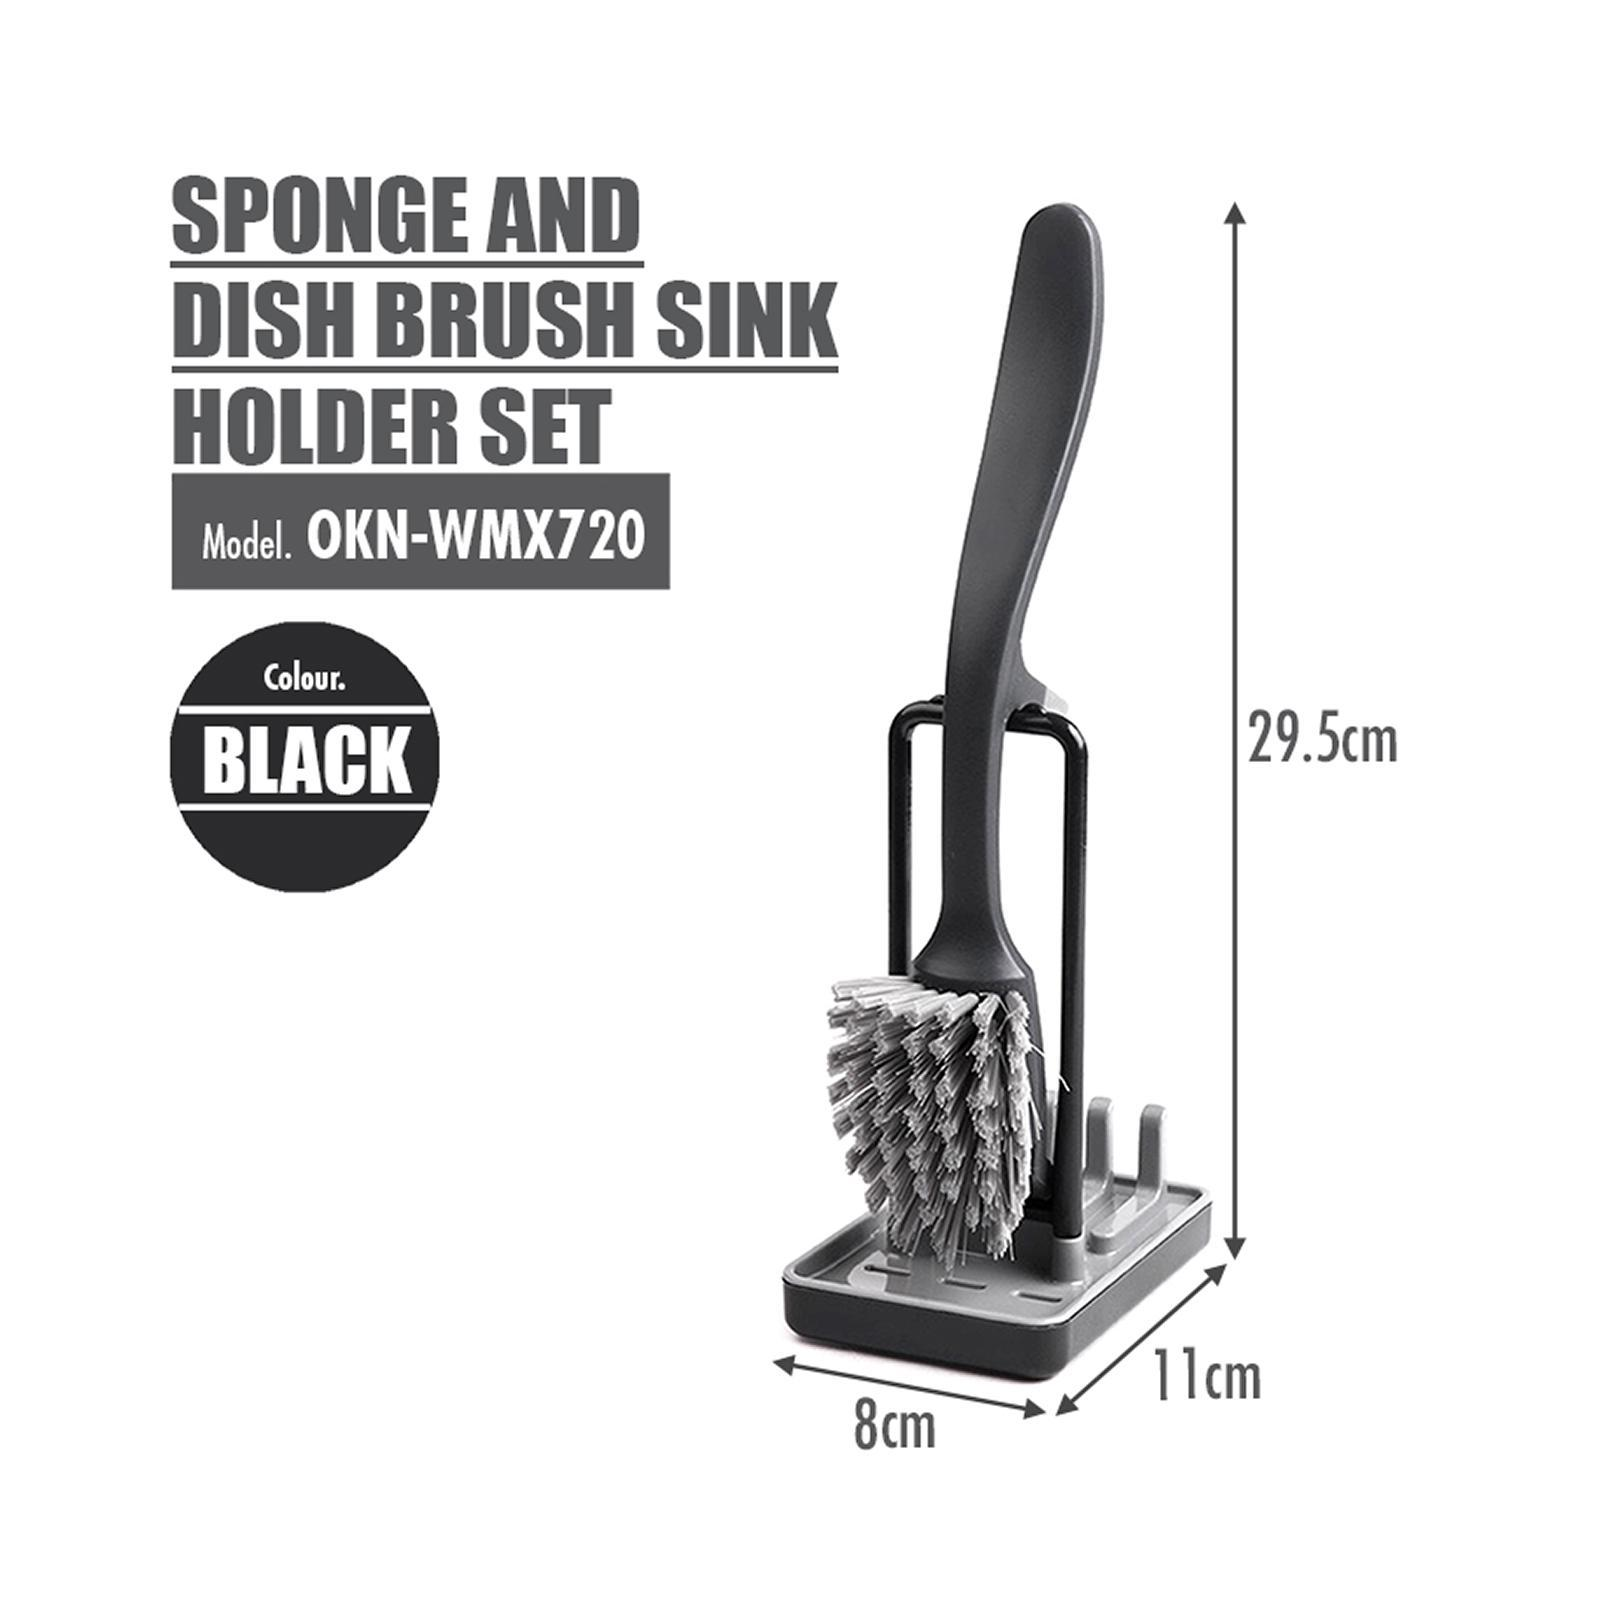 HOUZE Sponge And Dish Brush Sink Holder Set (Black)